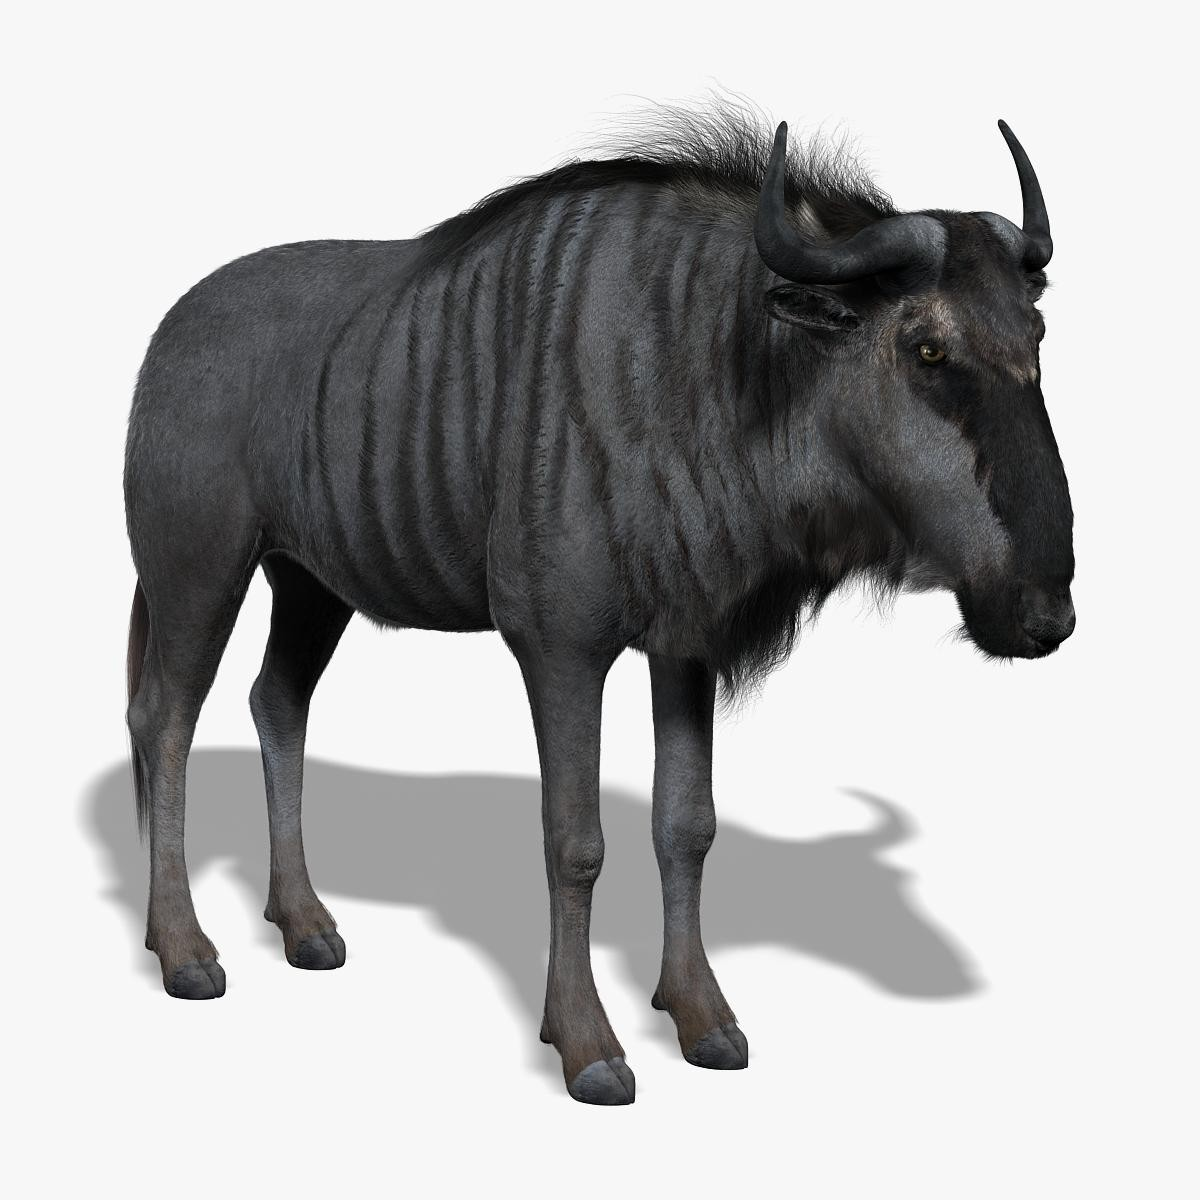 wildebeest gnu fur 3d model